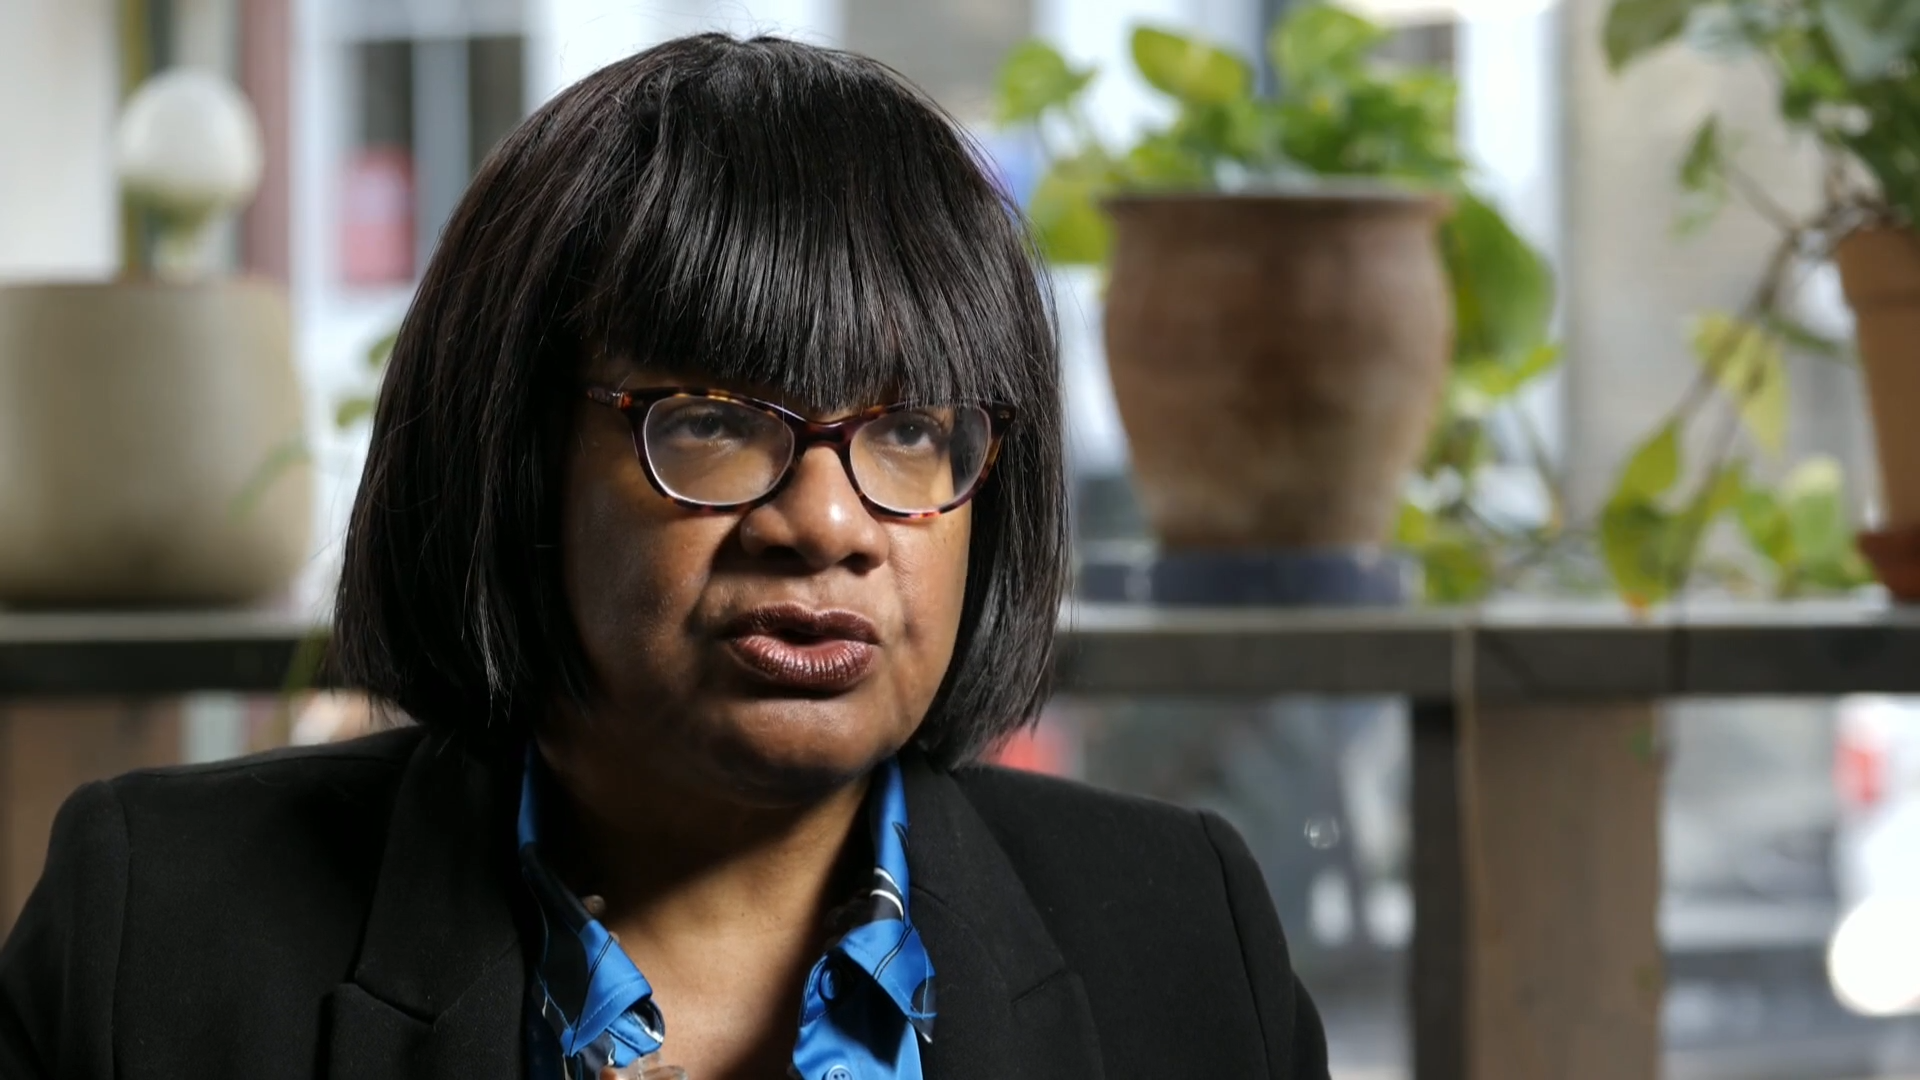 'There's a danger if you come from a working class background… that the establishment will absorb you' – Diane Abbott on getting into politics - channel 4